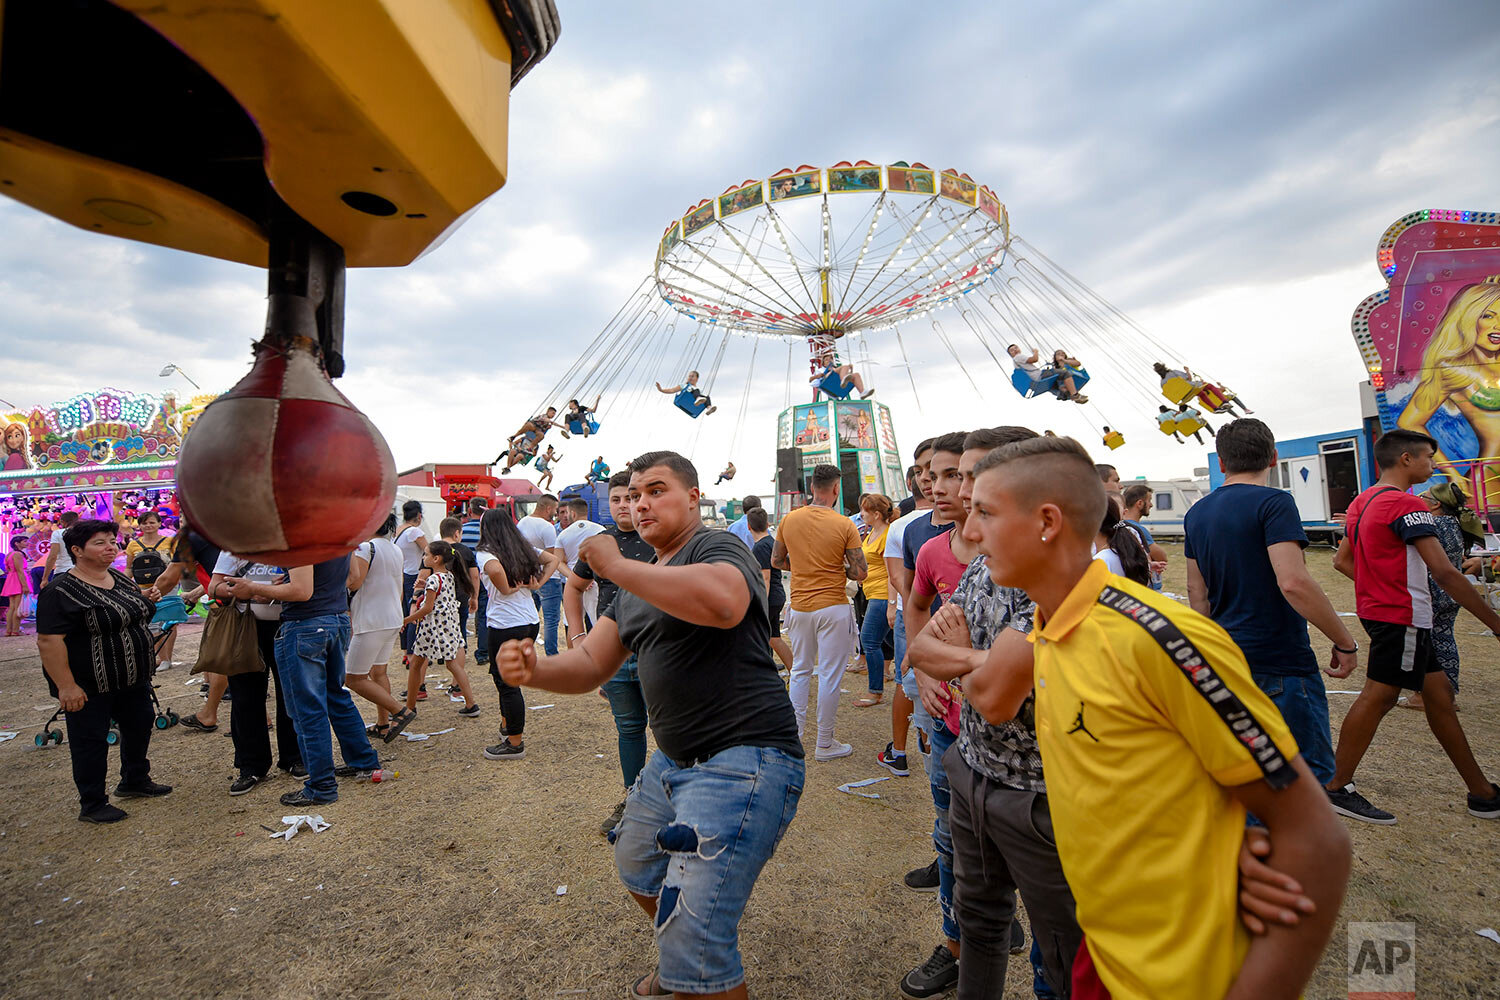 A man tests his strength at a boxing power punch machine at an autumn fair in Titu, southern Romania, Sept. 14, 2019. (AP Photo/Andreea Alexandru)